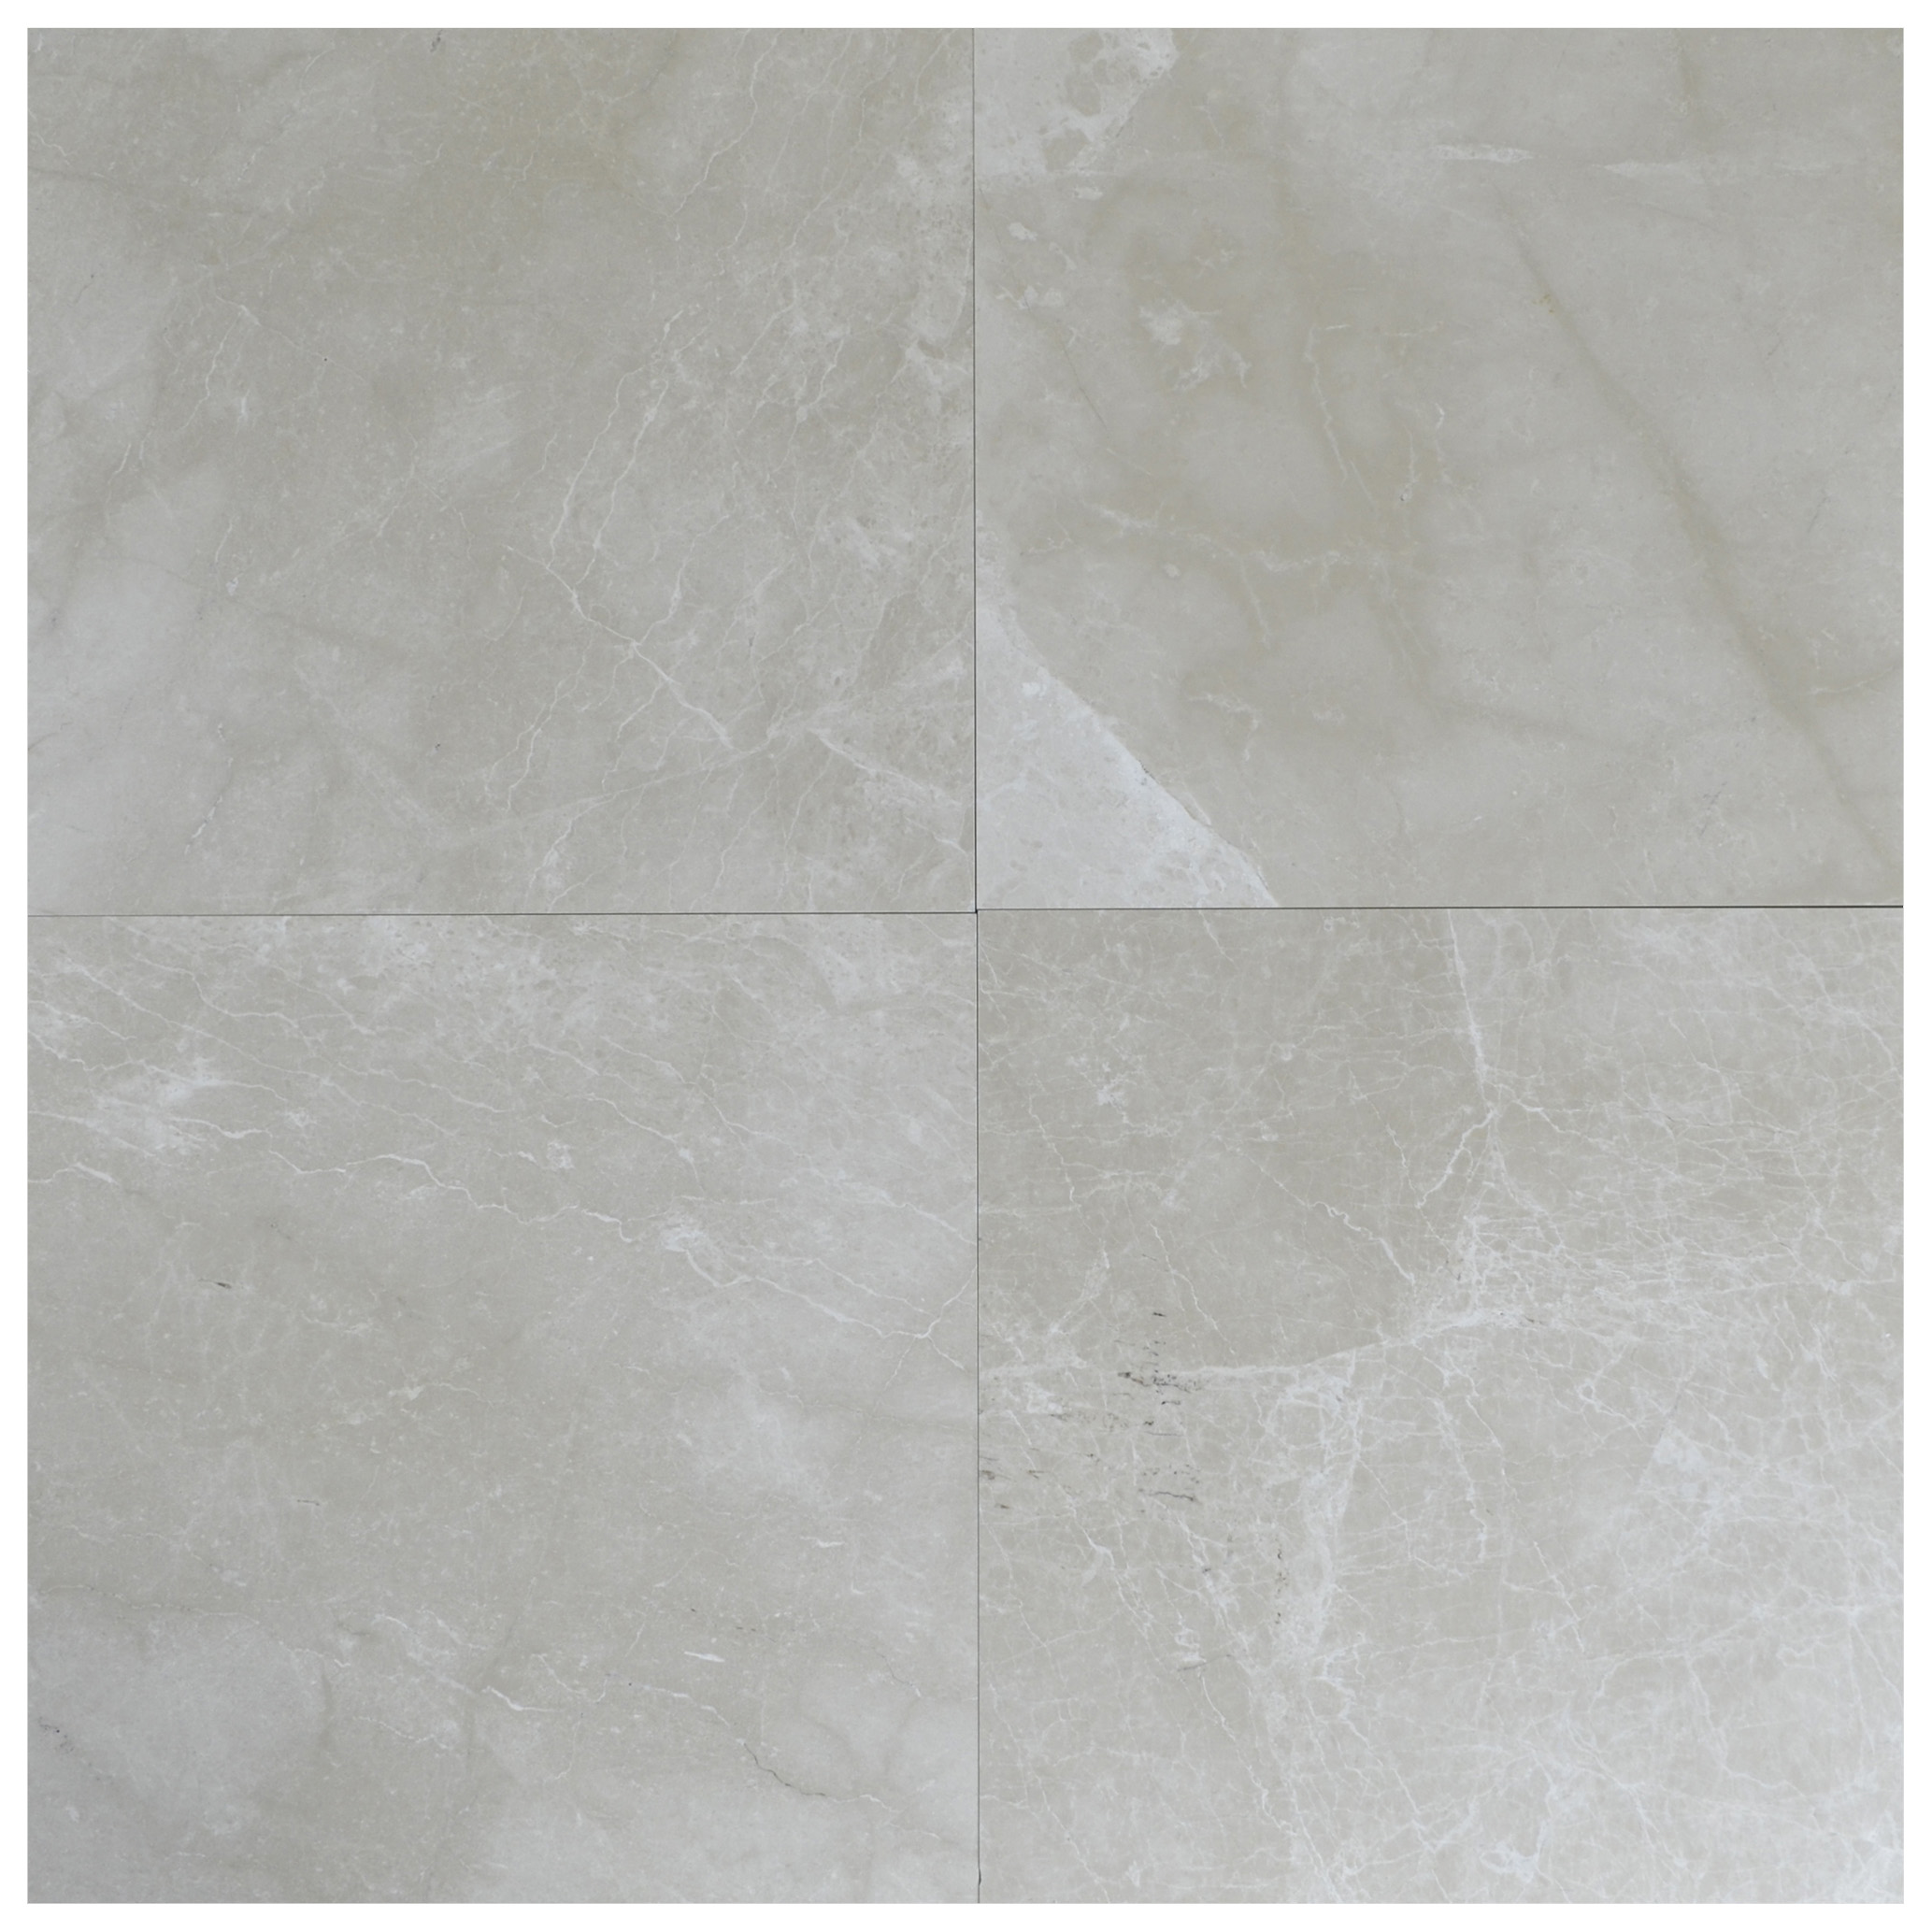 botticino beige B polished marble tiles 18X18-marble sale-Atlantic Stone Source